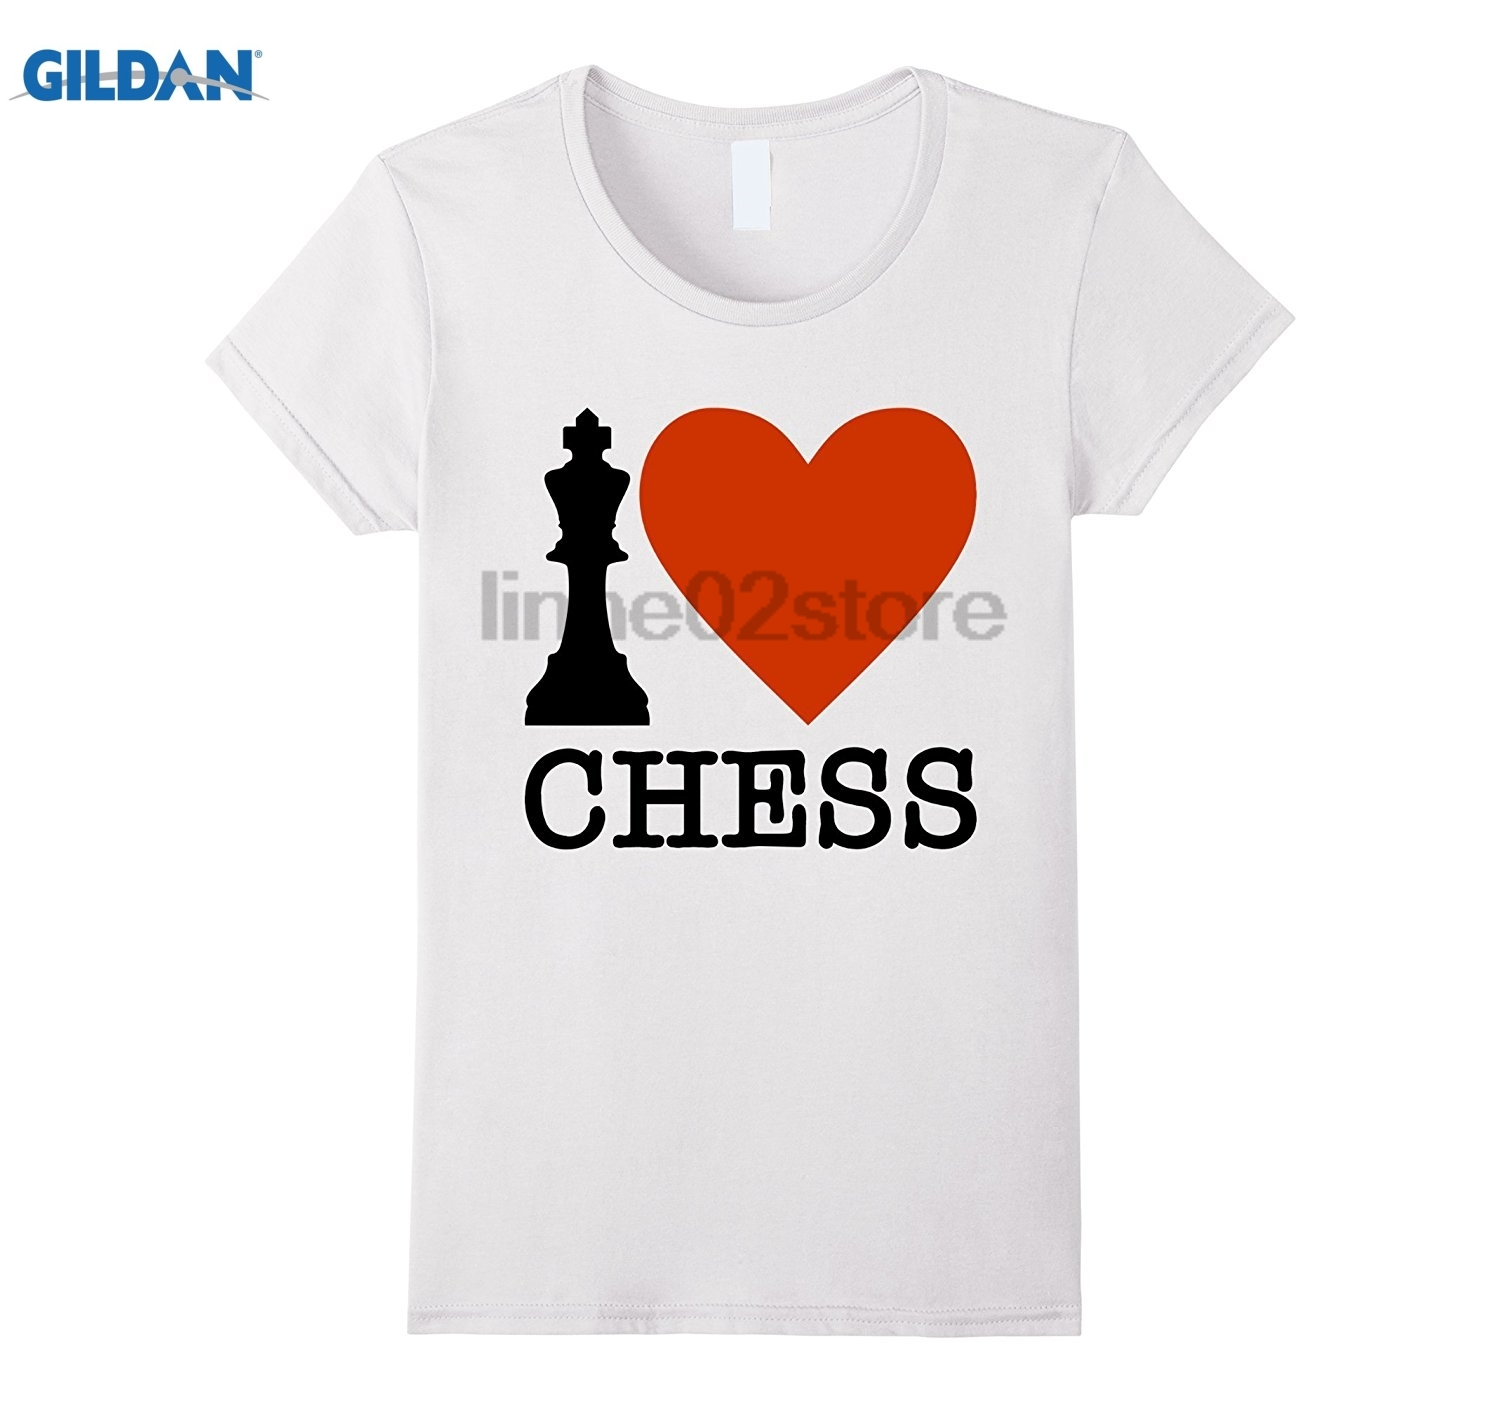 GILDAN I Love Chess T-Shirt Strategy Board Game Master Graphic Tee Mothers Day Ms. T-shi ...